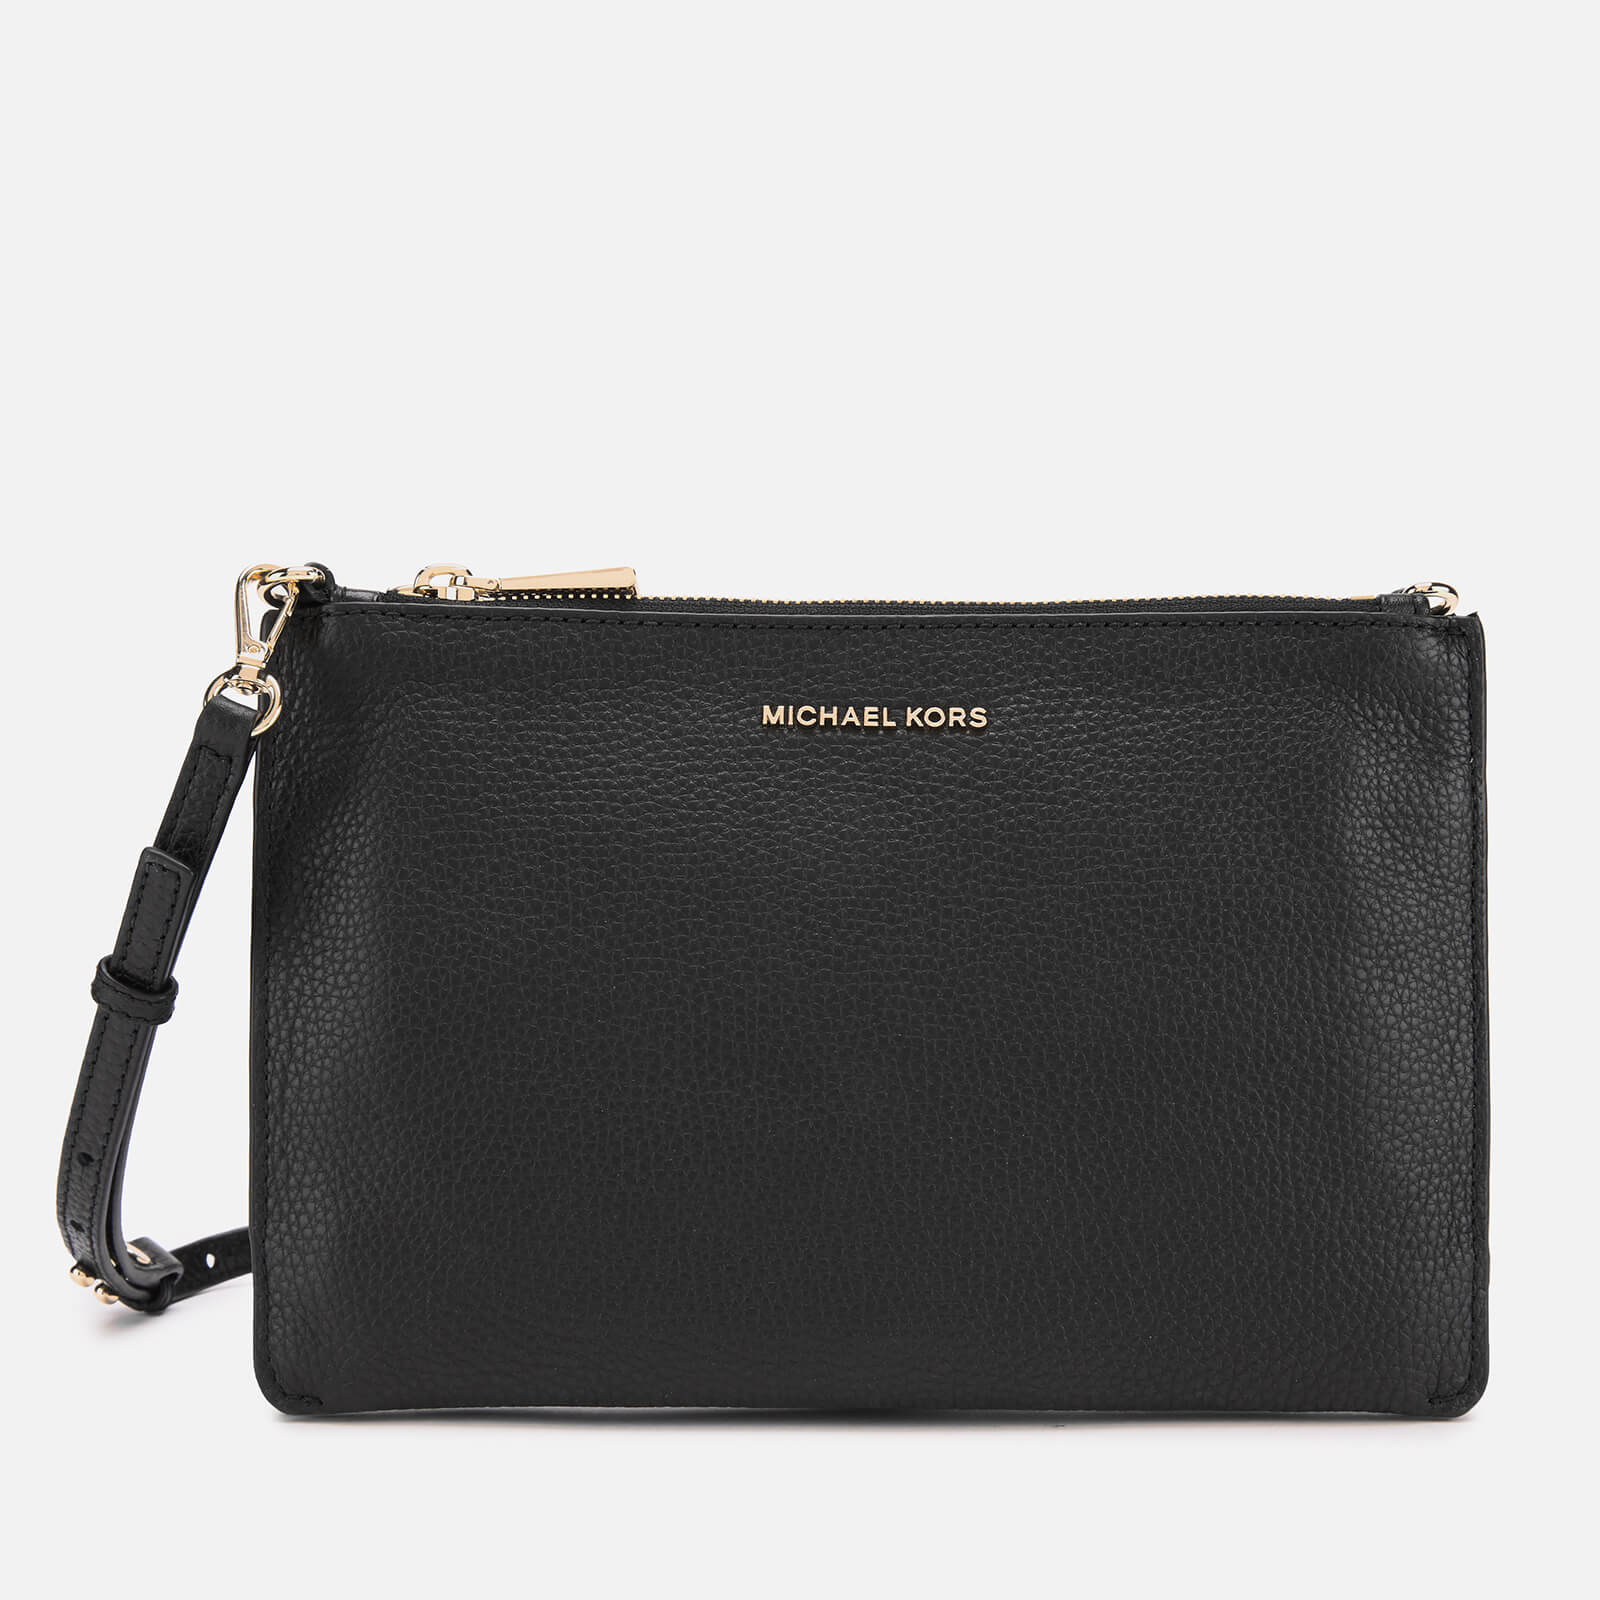 5f5d9359f99c39 MICHAEL MICHAEL KORS Women's Crossbodies Large Double Pouch Cross Body Bag  - Black - Free UK Delivery over £50